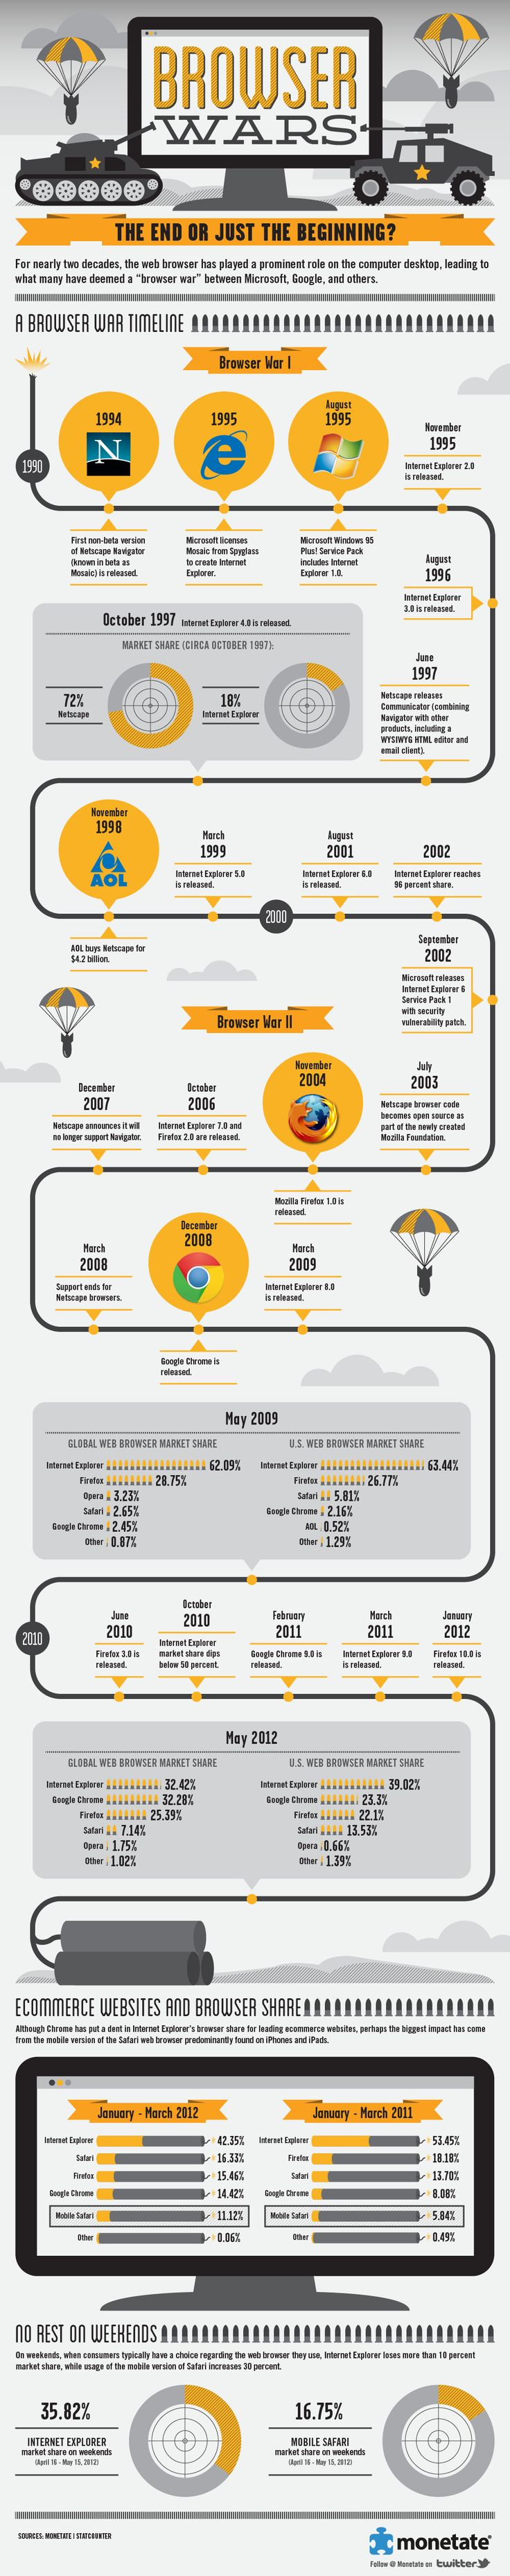 """Browser Wars: The End or Just the Beginning?"" reveals not only the impact web browsers like Chrome and Firefox have had on the once-mighty Internet Explorer, but introduces another strong contender in the battle for web browser superiority… Mobile Safari, found on devices like the iPhone and iPad. We also thought it would be fun to do a timeline of the somewhat notorious ""Browser Wars"" that have taken place for more than two decades."